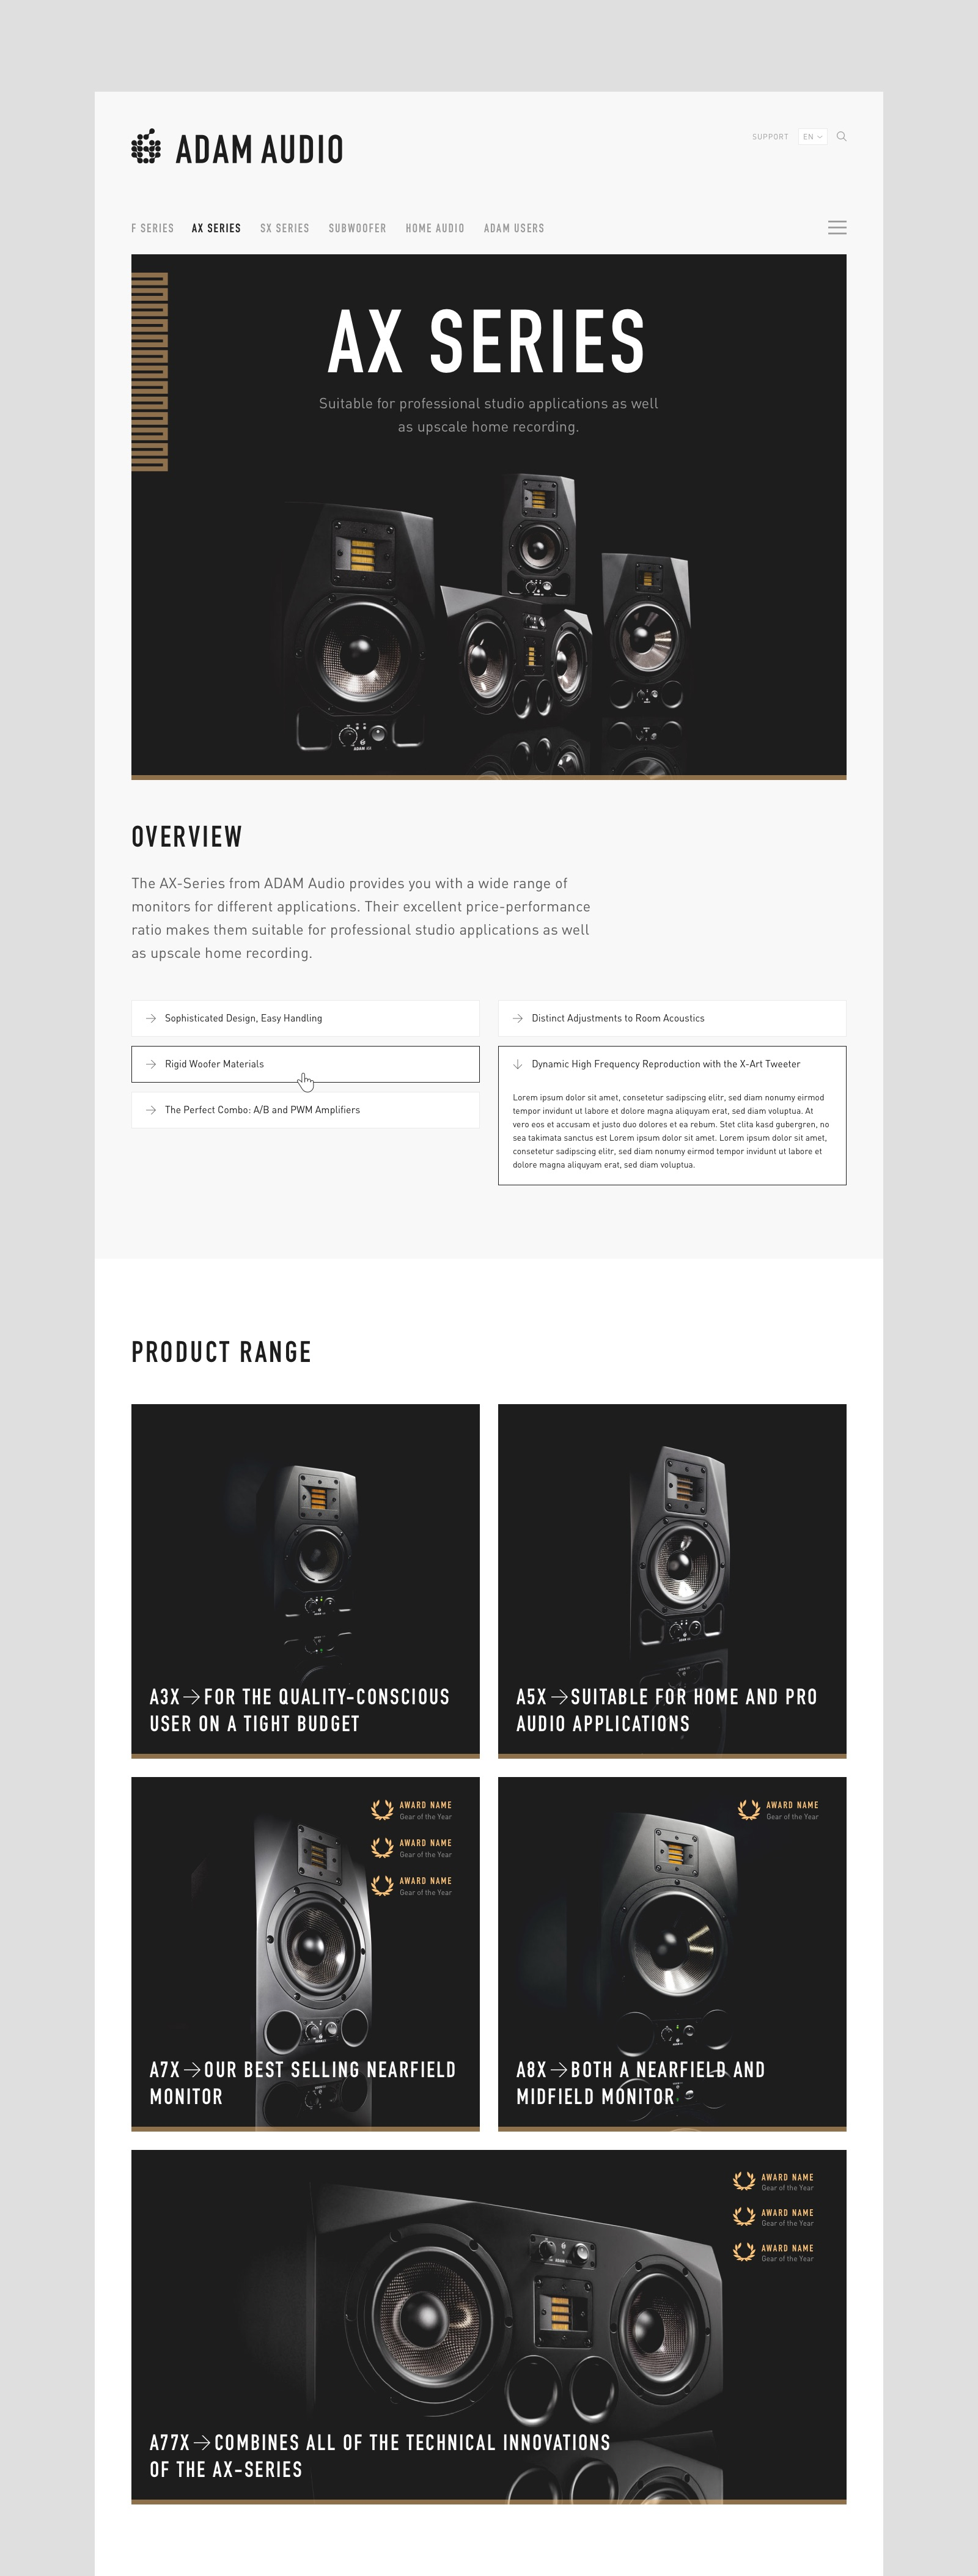 Adam Audio landing page design by Felix Dorner